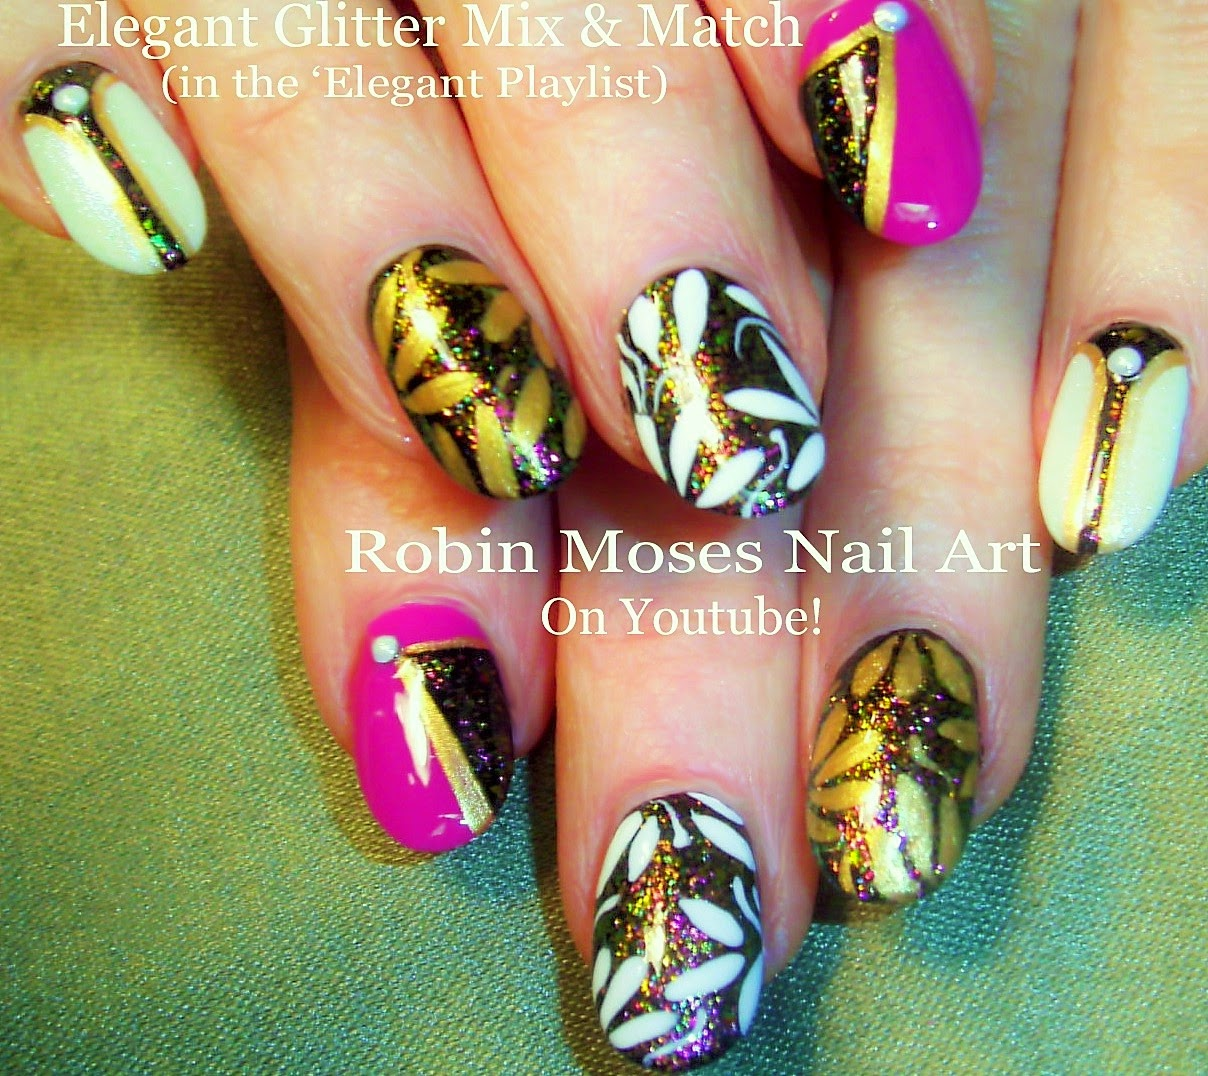 Robin moses nail art nail art pink nails spring nails nail art pink nails spring nails spring nail trends spring nail art elegant nails pink and black nails clip art pink black white how to prinsesfo Choice Image